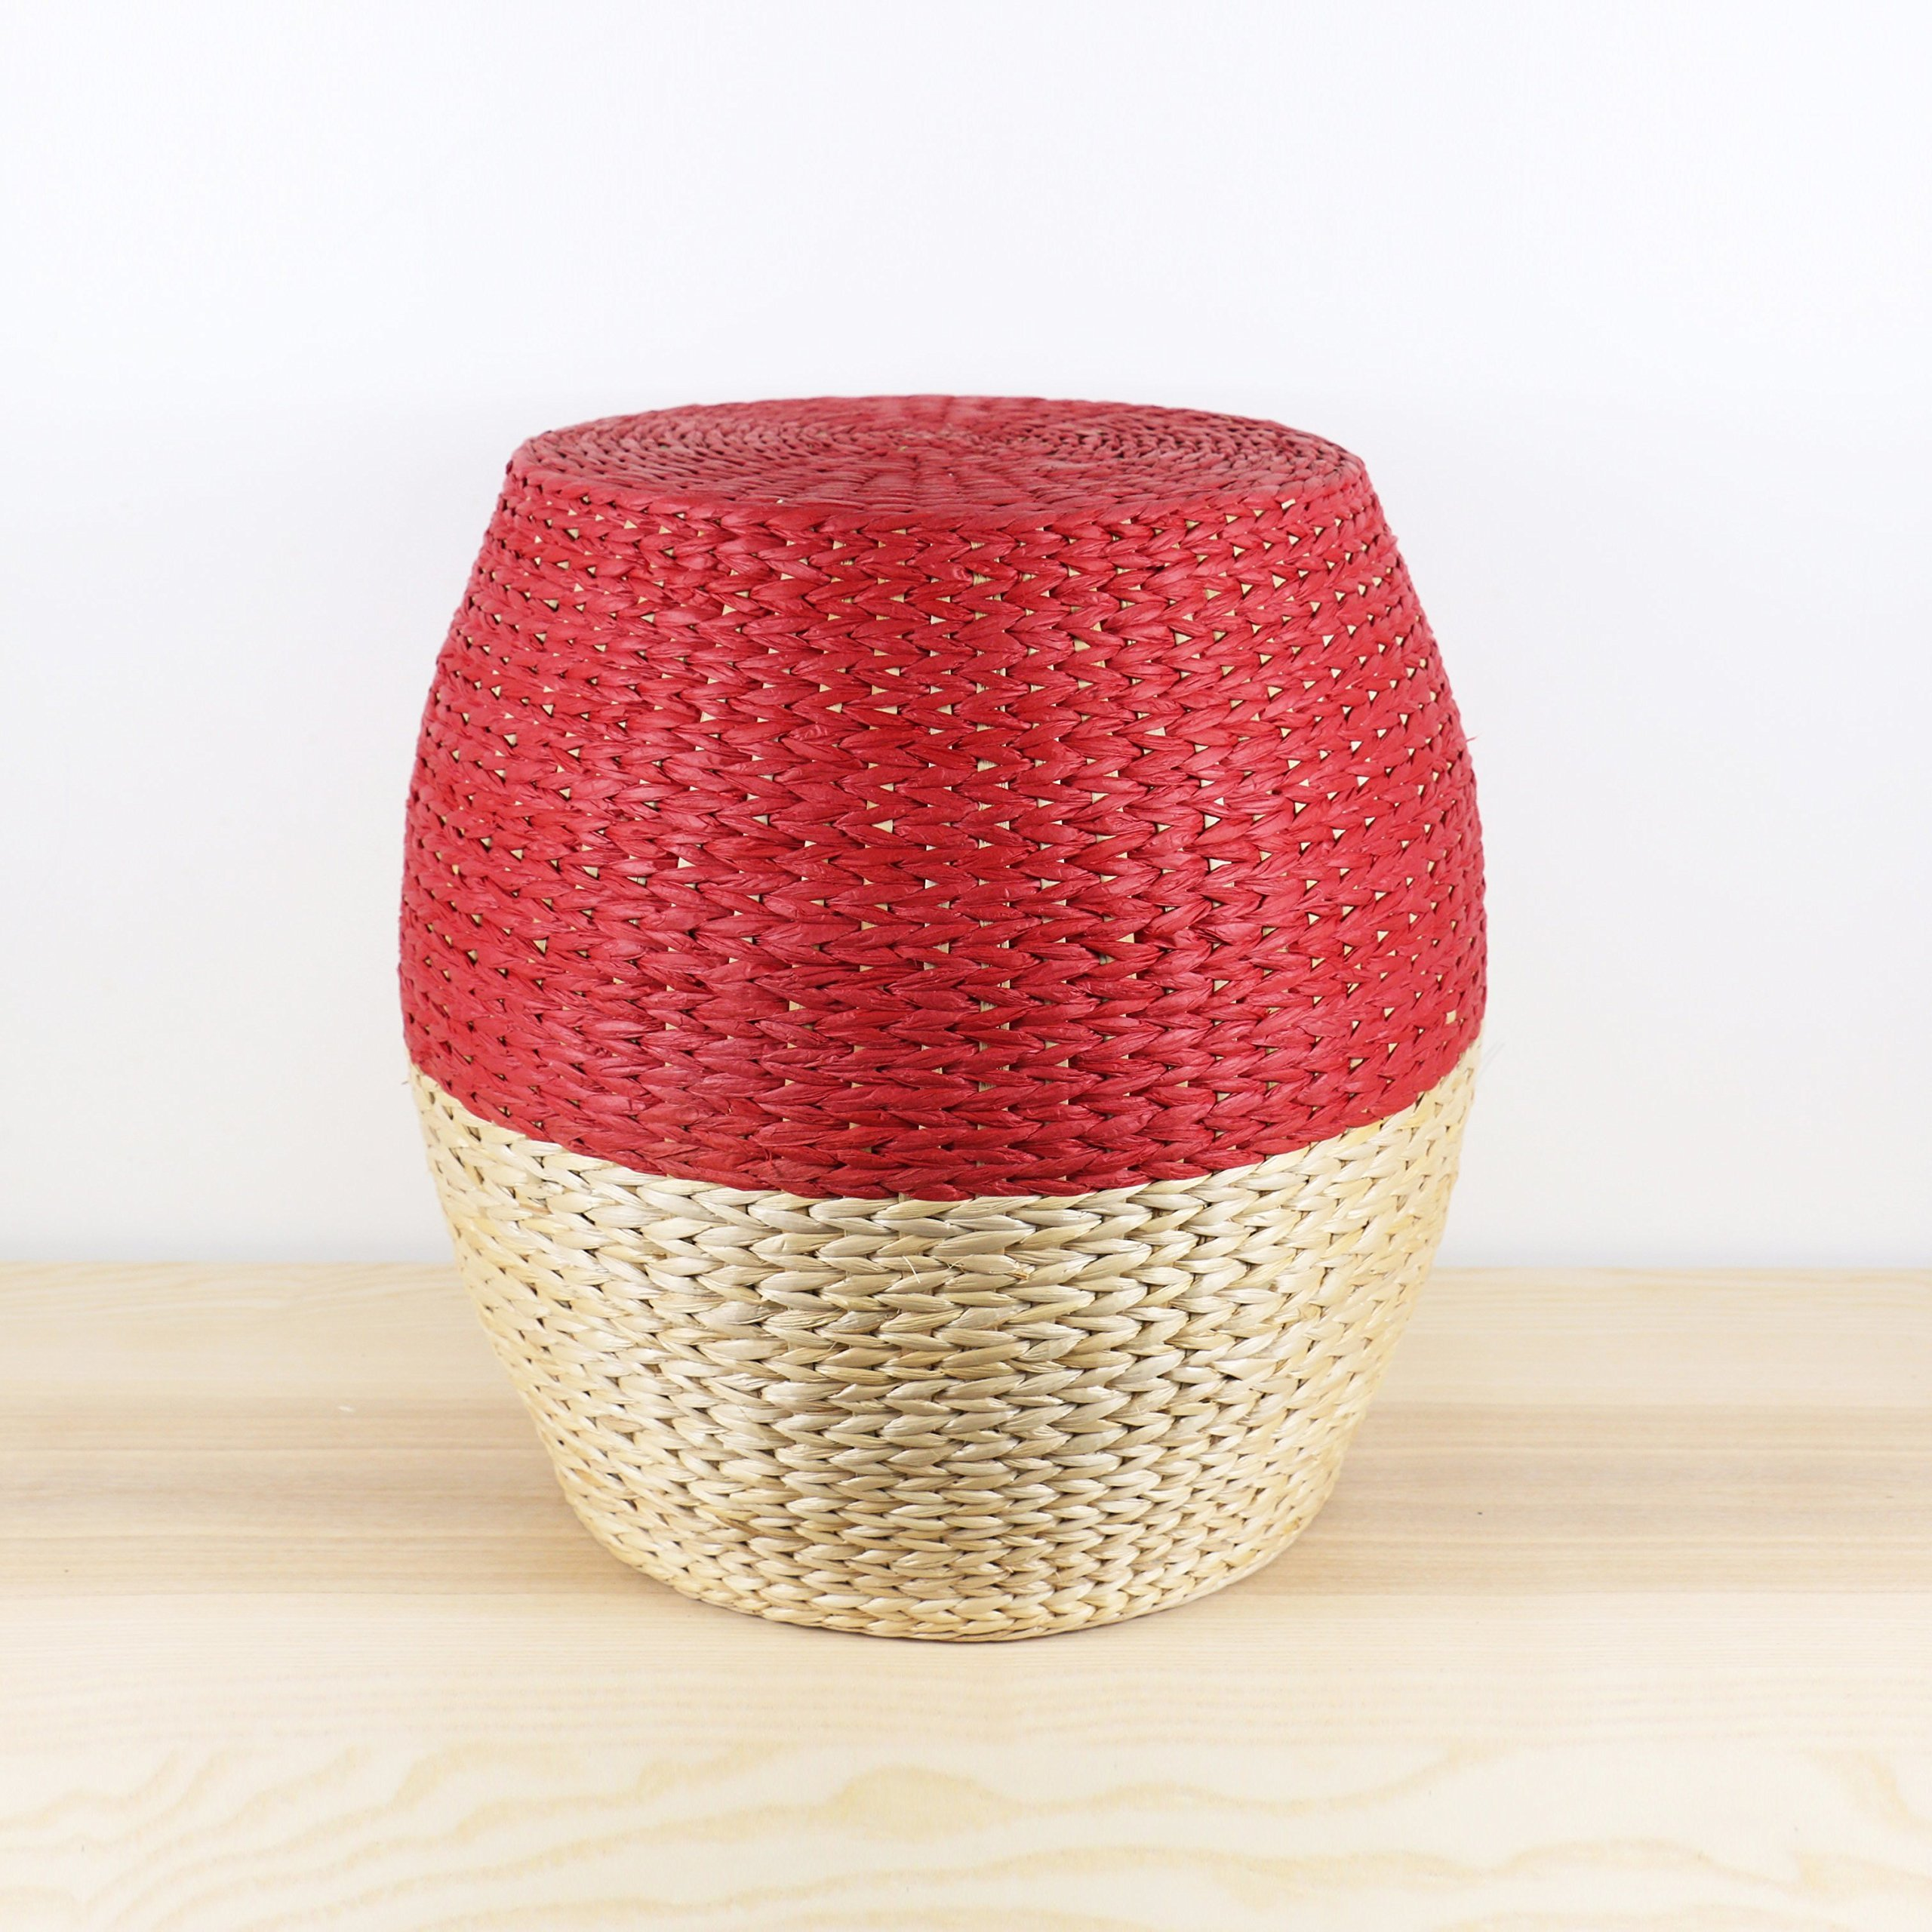 Round rustic red-white wood stool/Wholesales bulk/wedding gift/rustic stool/Wooden chair/Country decor